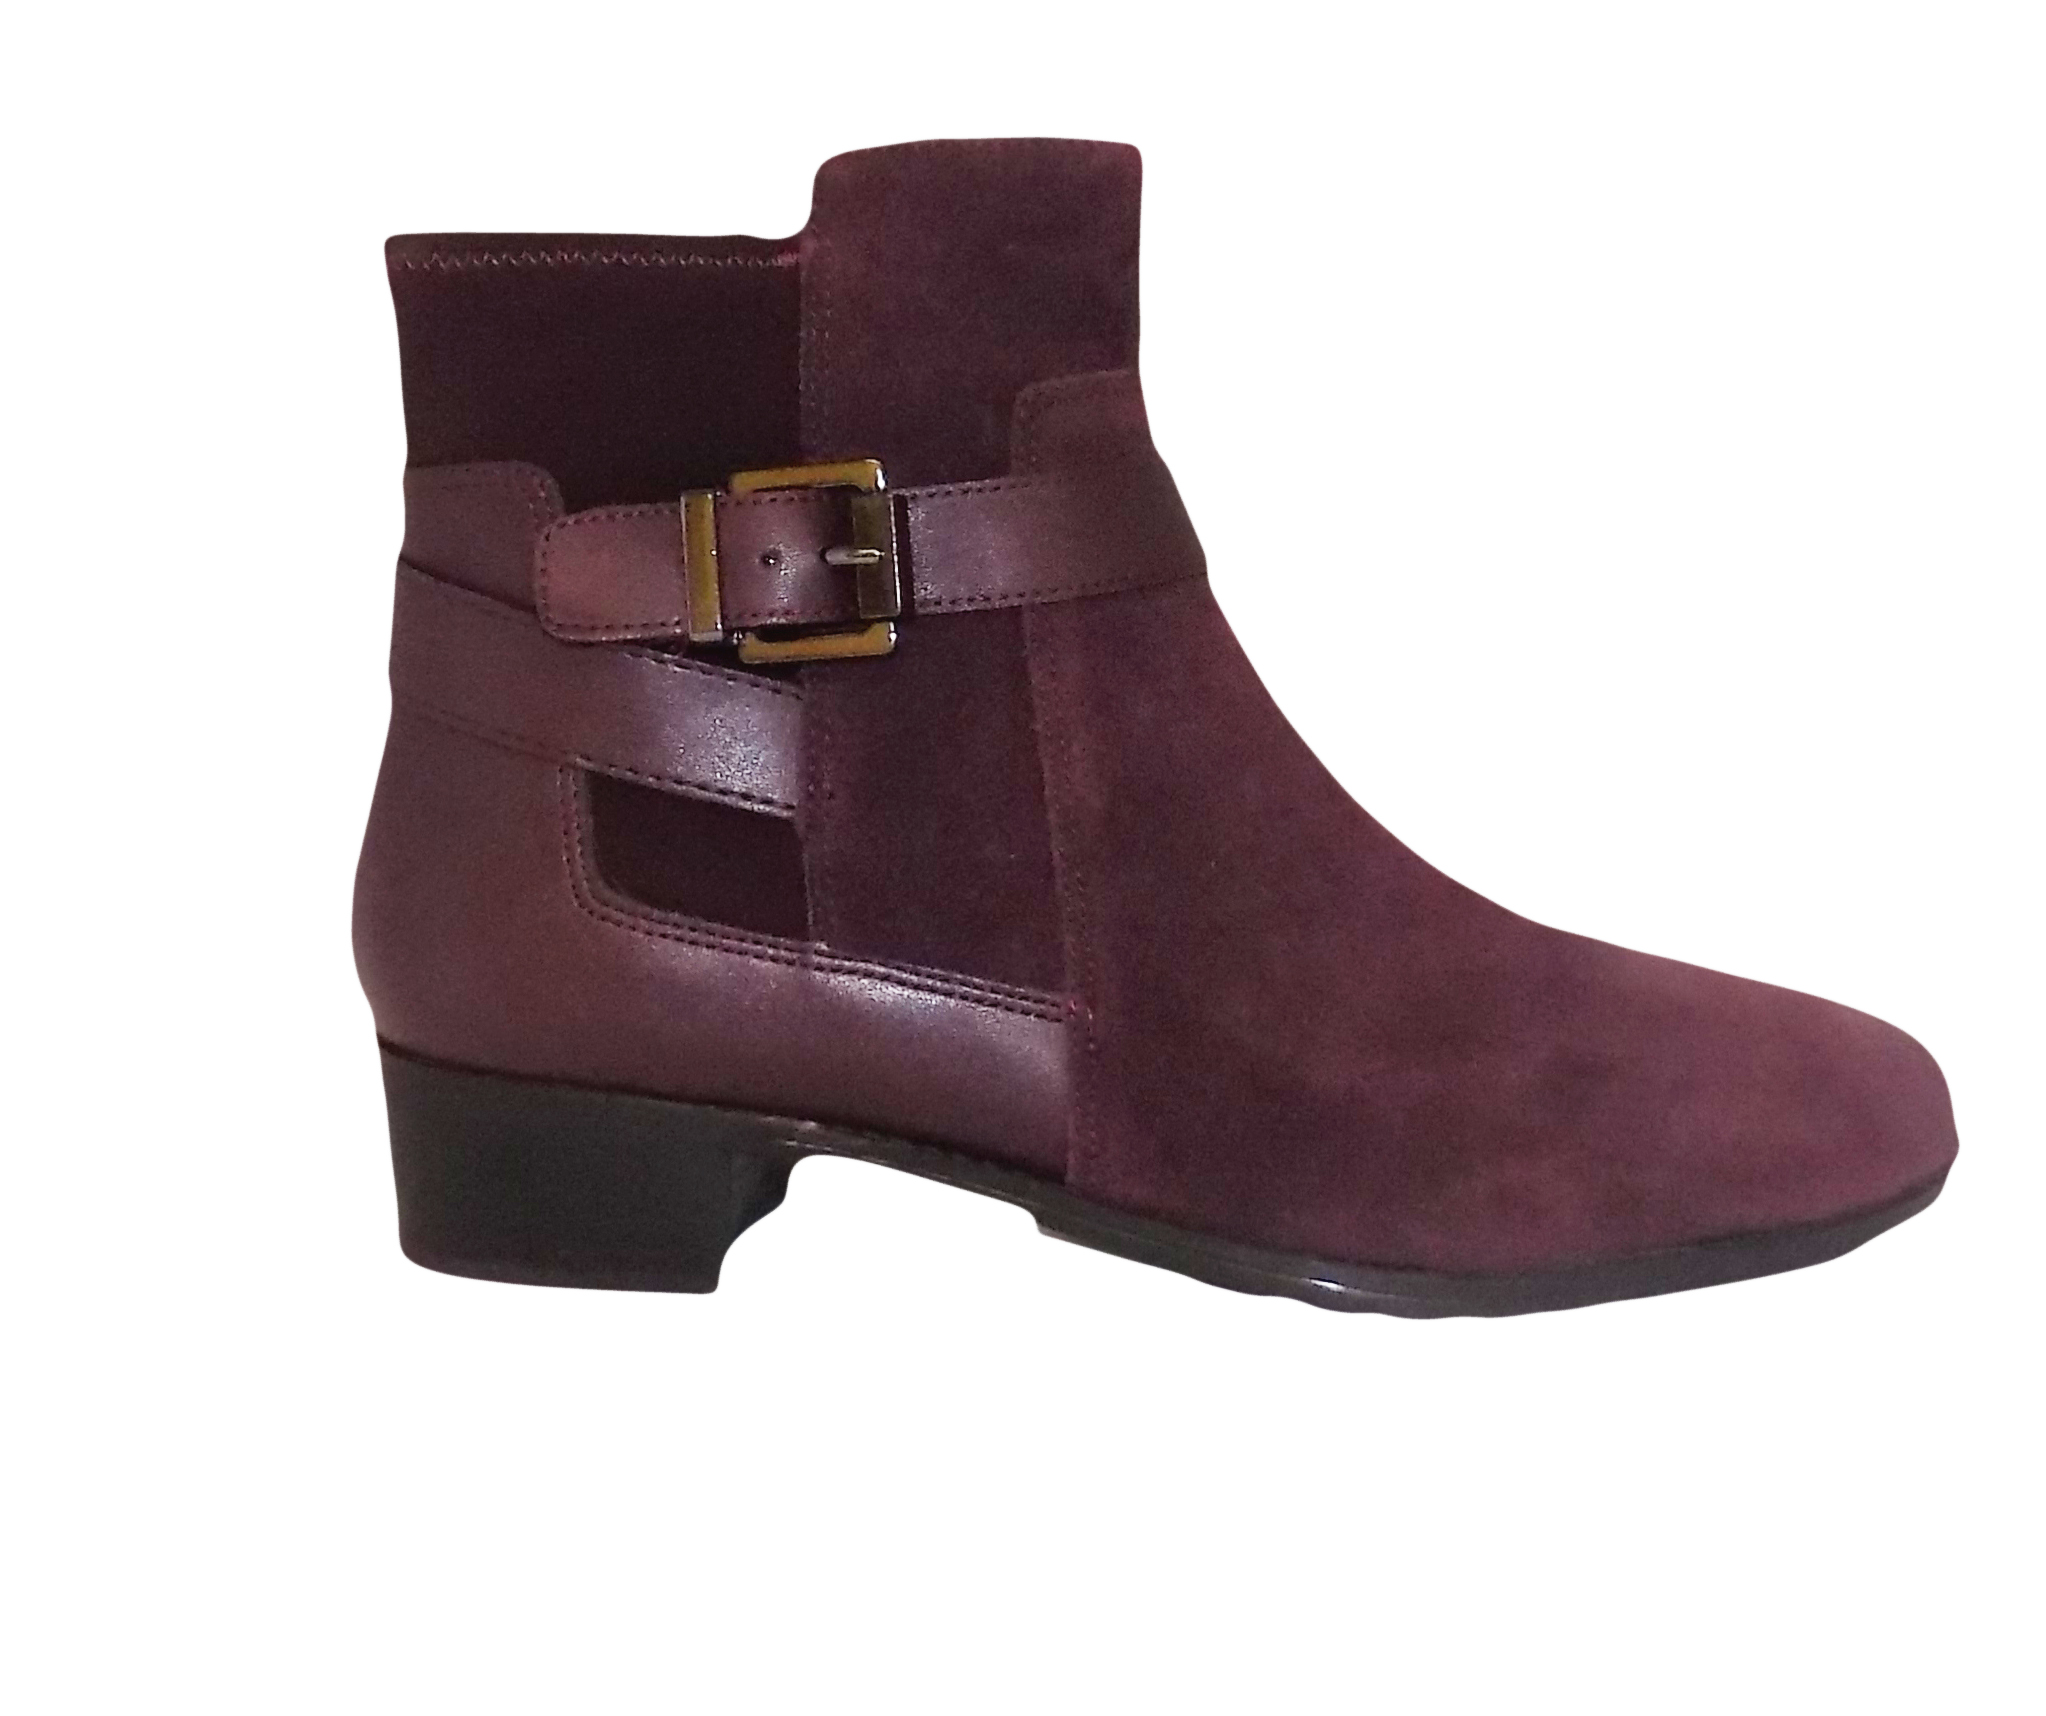 free shipping pictures buy cheap extremely Isaac Mizrahi Suede Ankle Boots 2015 new cheap online cheap countdown package clearance manchester great sale eyhf4o